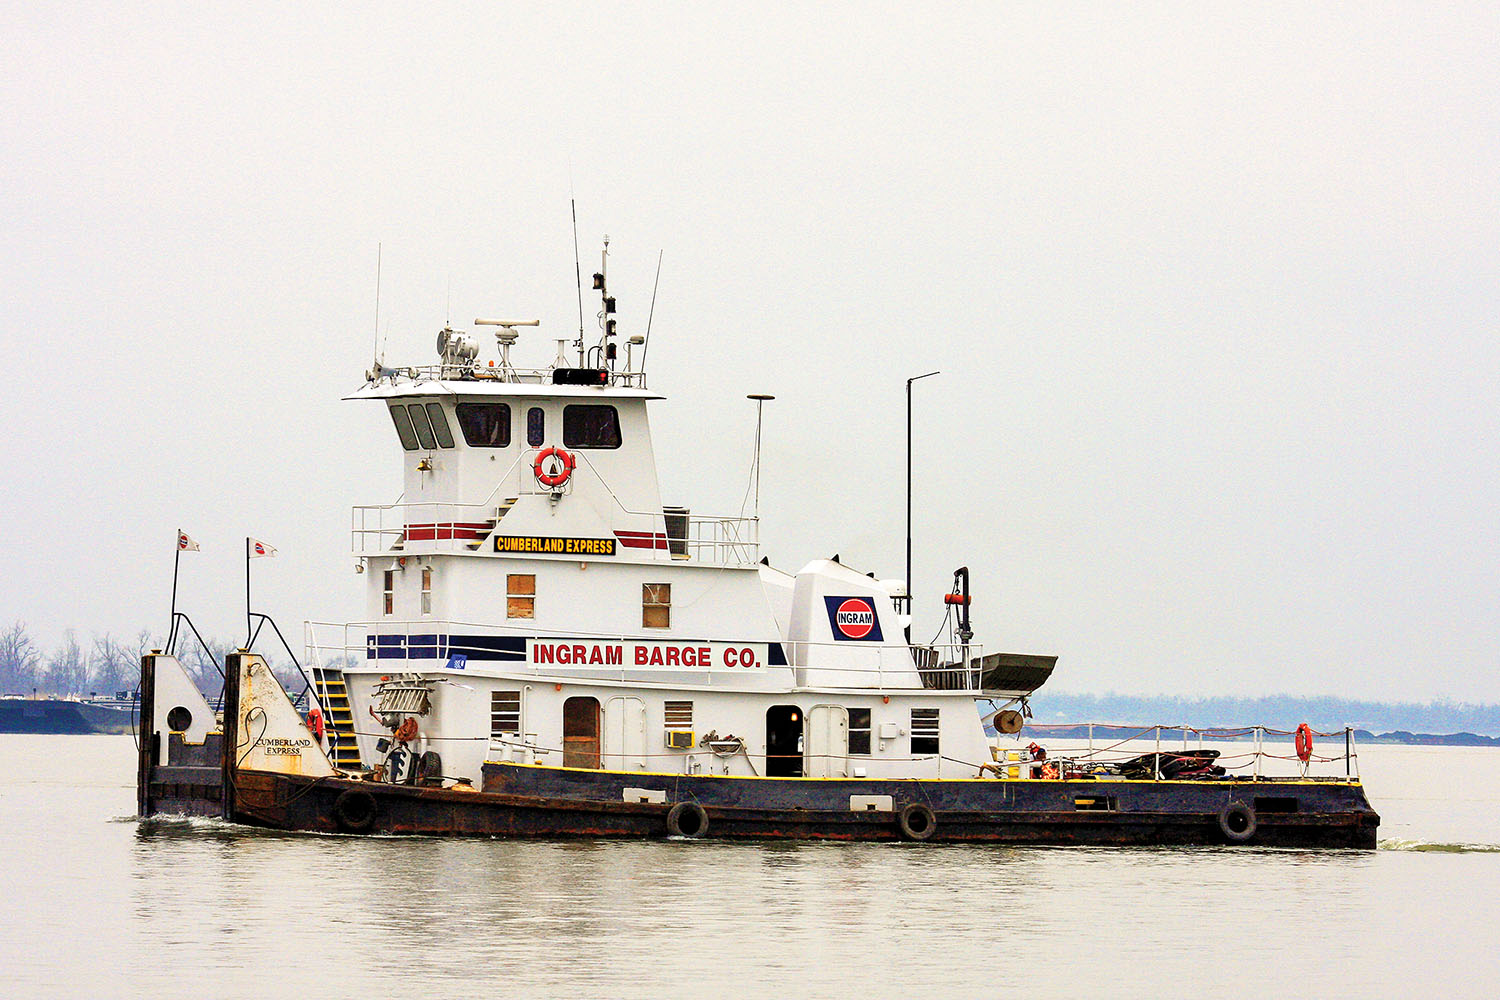 The mv. Cumberland Express, built in 1973 by Scully Bros. Boat Builders, is one of seven towboats that Mavericks Towboat Solutions purchased from Ingram Barge Company. (Photo by Jeff L. Yates)